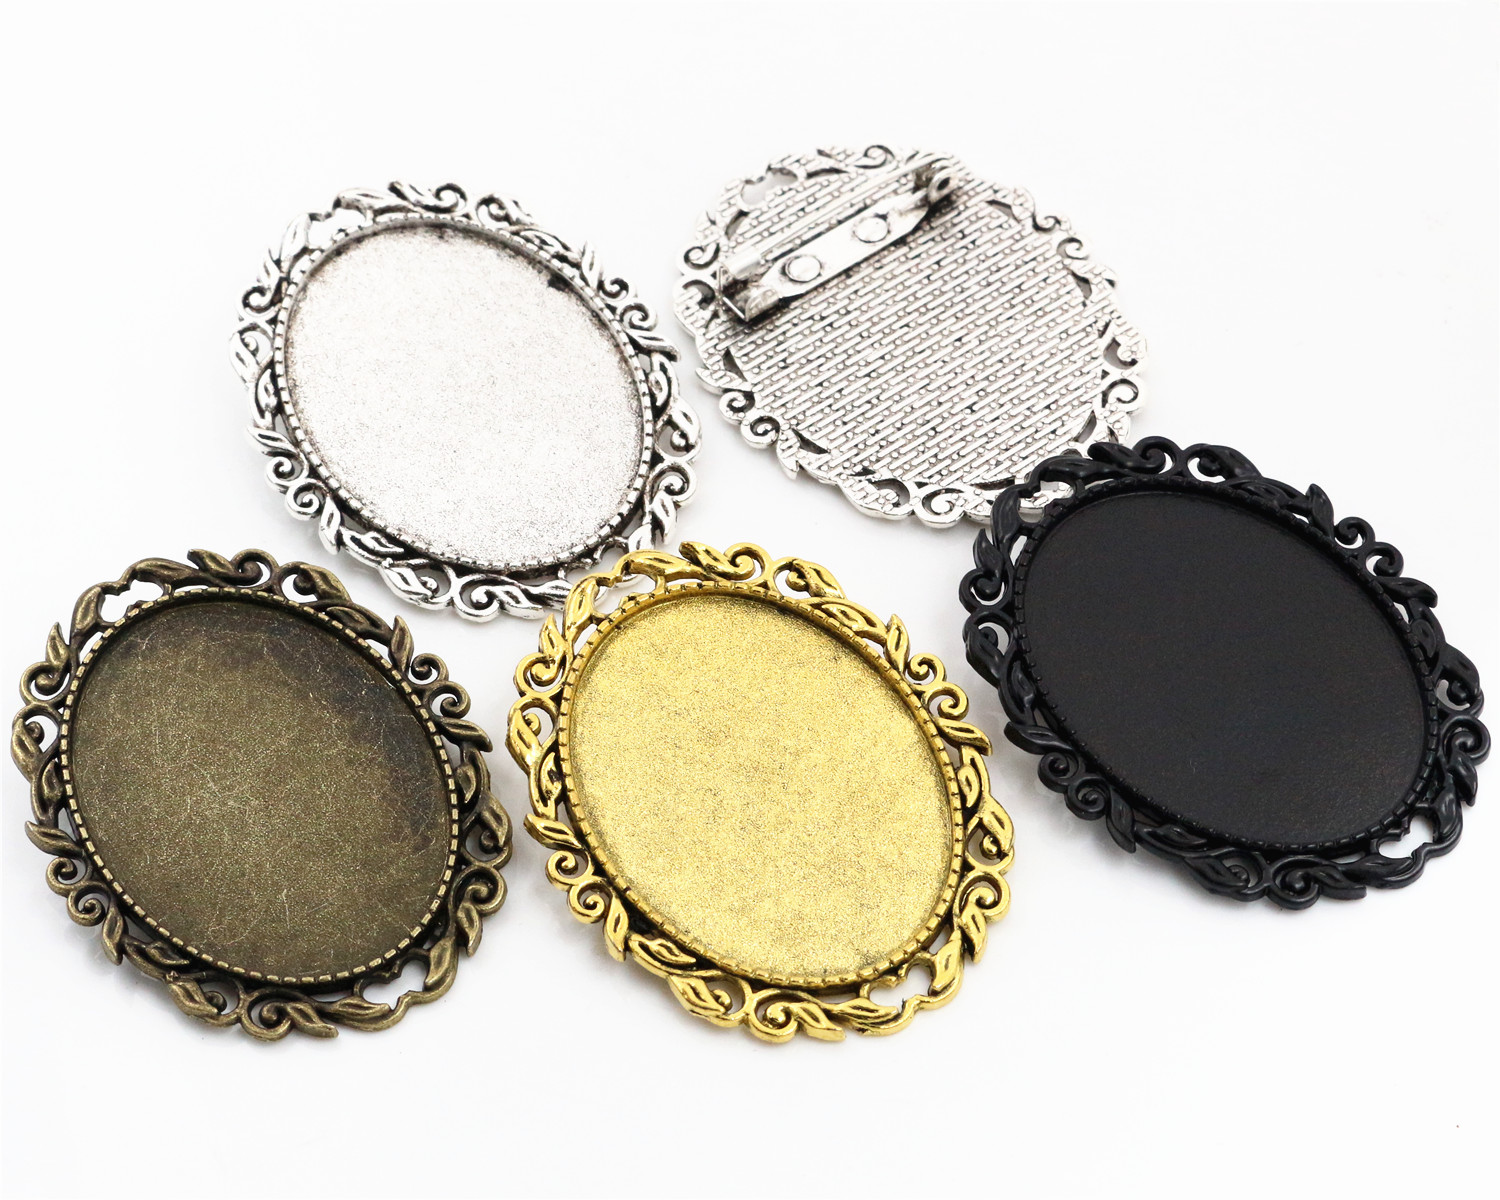 New Fashion 5pcs 30x40mm Inner Size 4 Colors Plated Pin Brooch Pierced Style Base Setting PendantNew Fashion 5pcs 30x40mm Inner Size 4 Colors Plated Pin Brooch Pierced Style Base Setting Pendant